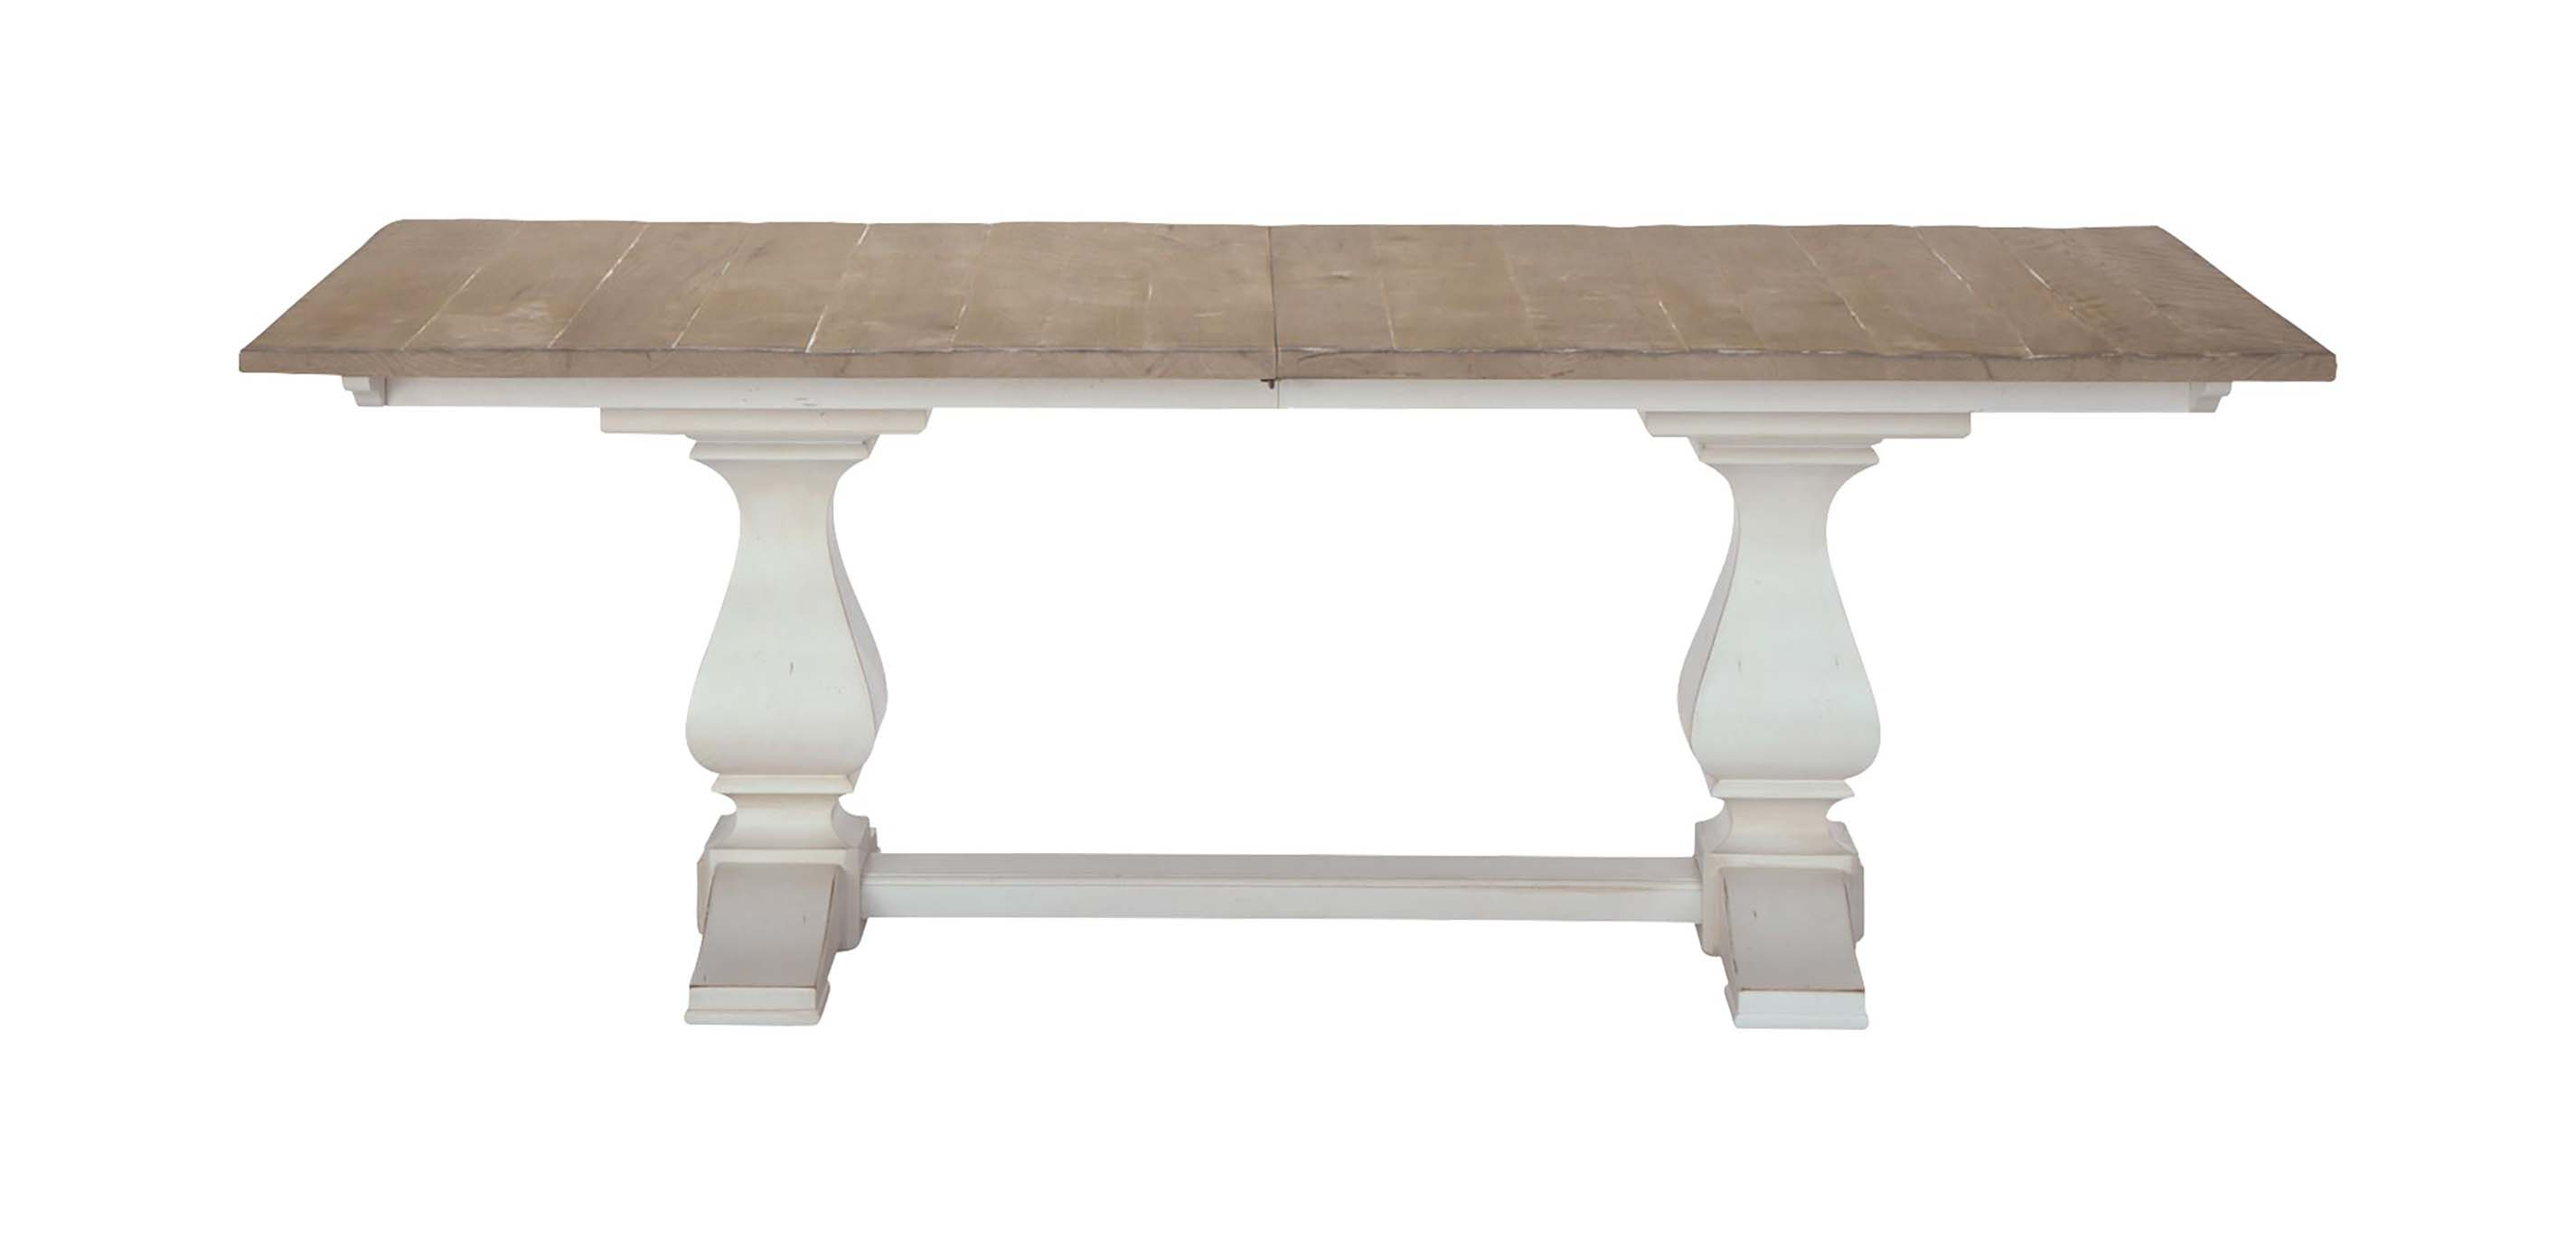 Images Cameron Extension Rustic Dining Table , , Large_gray